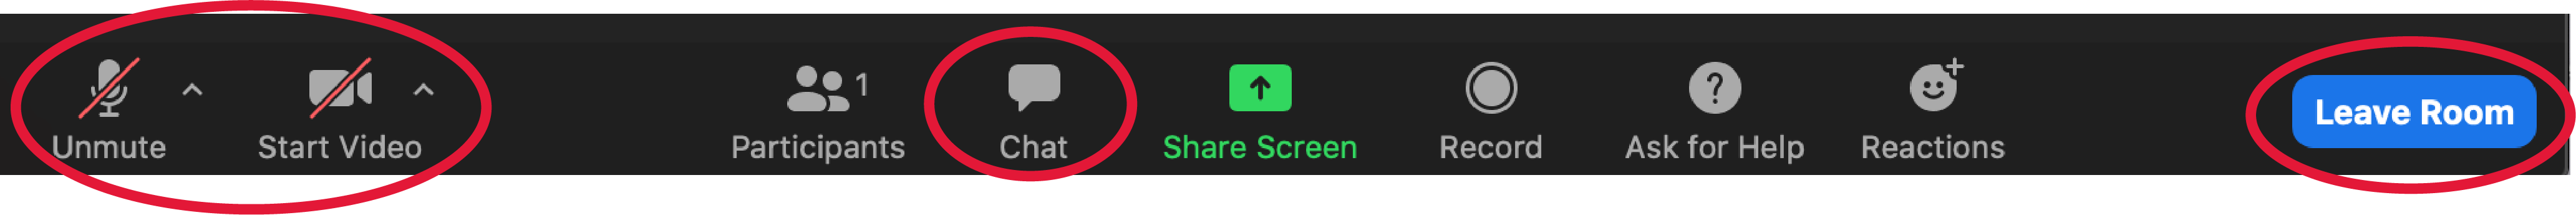 Zoom tool bar navigation. Unmute, Start Video, Chat, and Leave Room buttons circled.